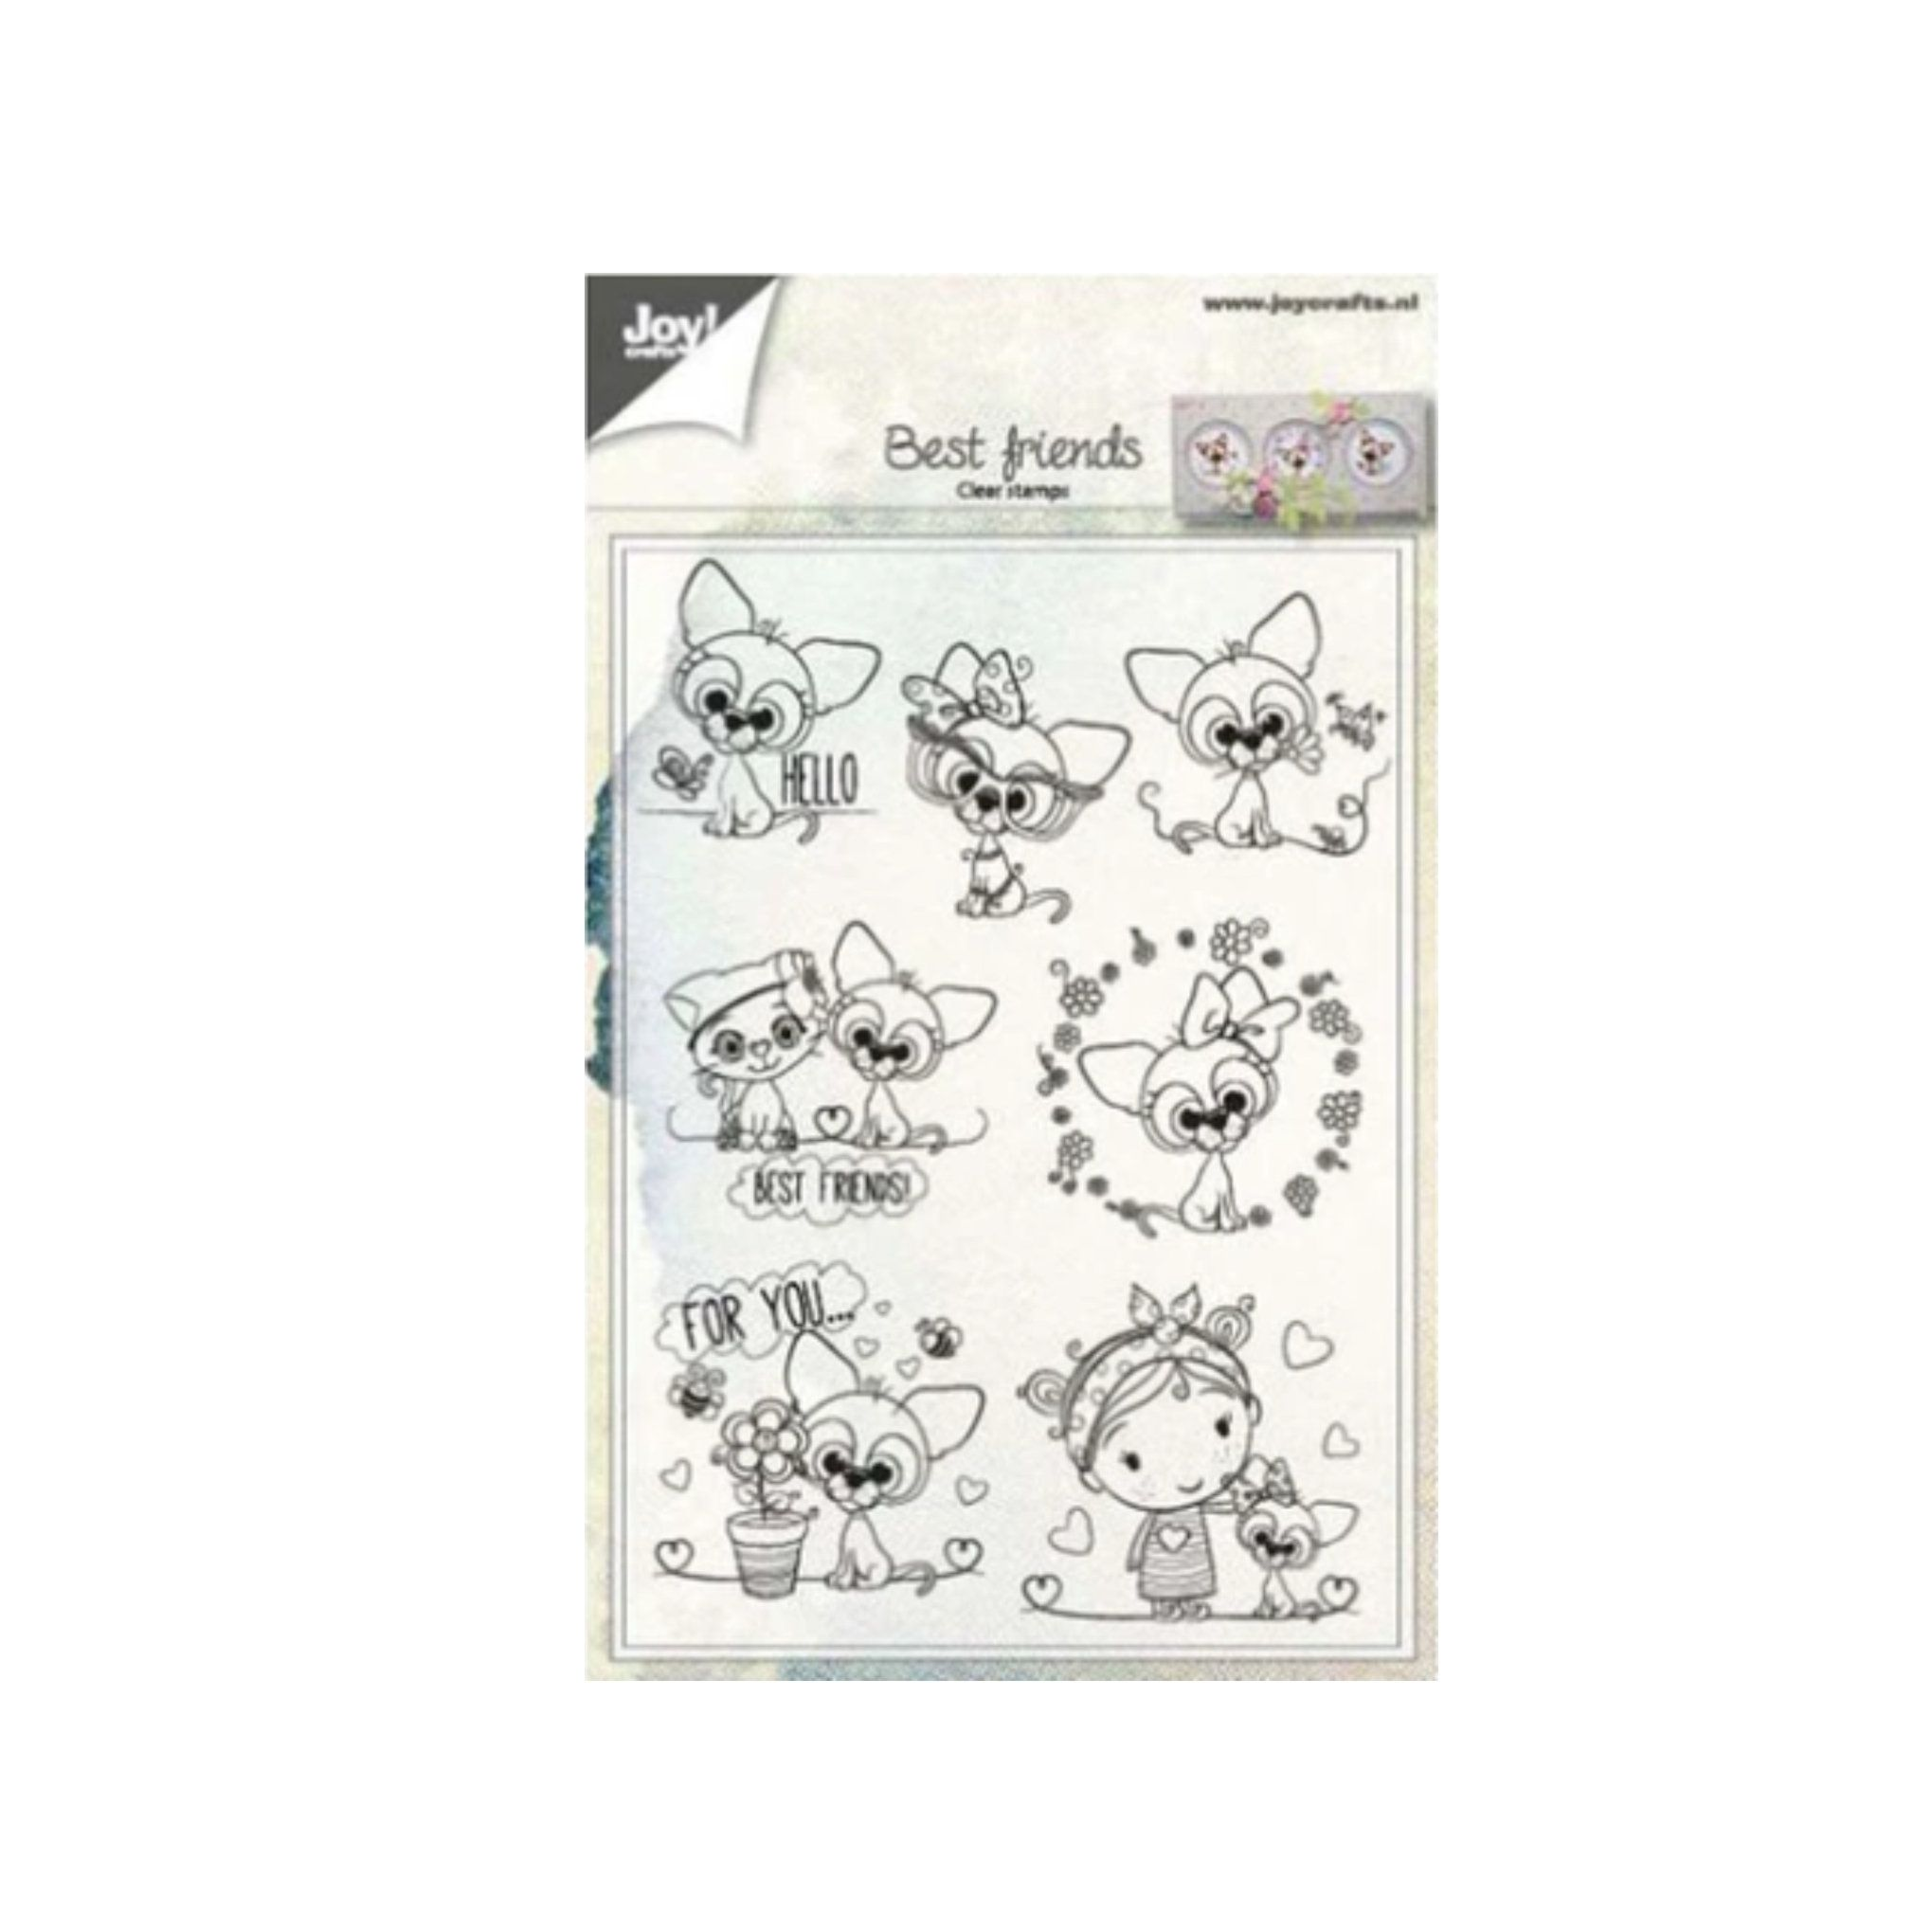 Cat Cling Clear Stamp Set Special Day Words Birthday Balloons Craft Consortium stamping,embossing,card making,Scrapbooking